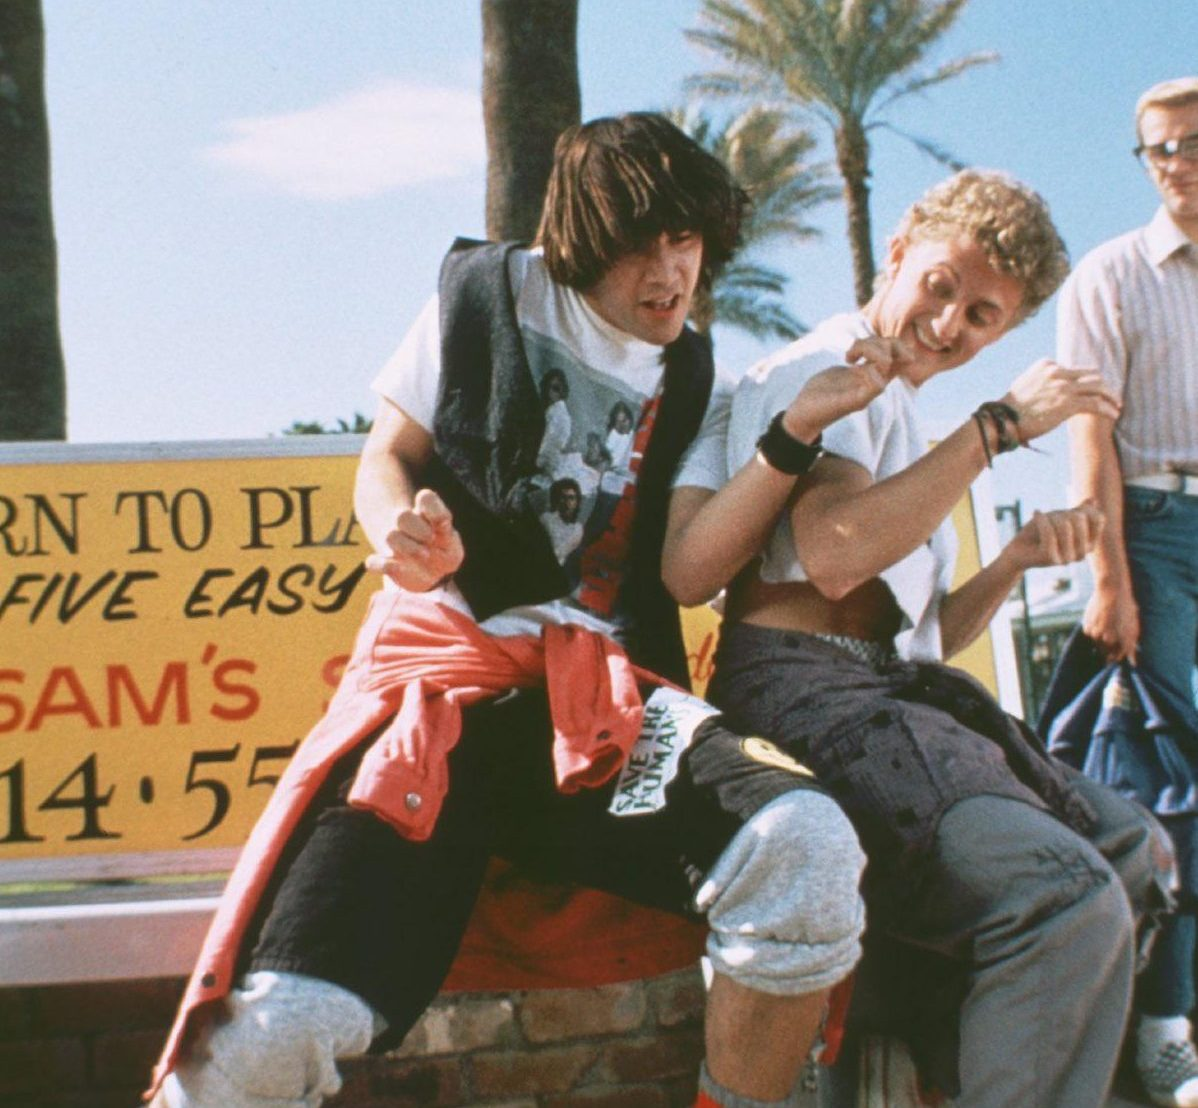 xtjbczdhkxh41 e1616516804494 25 Totally Non-Heinous Facts About Bill & Ted's Excellent Adventure!